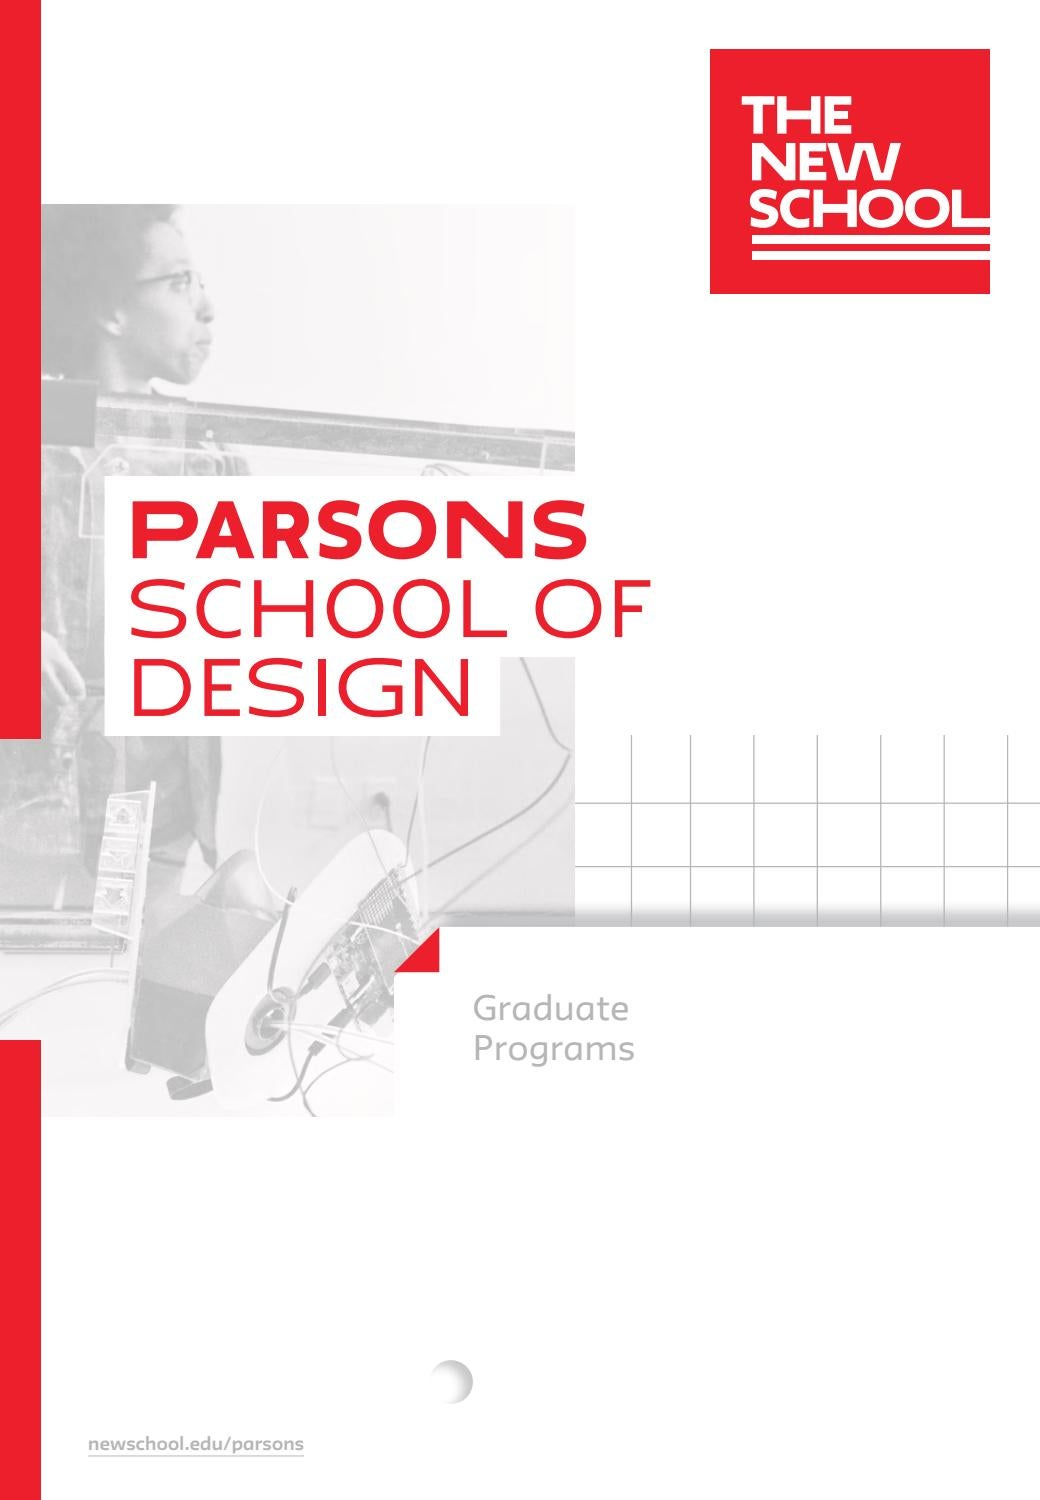 2019 Parsons Graduate Programs Viewbook By The New School Issuu